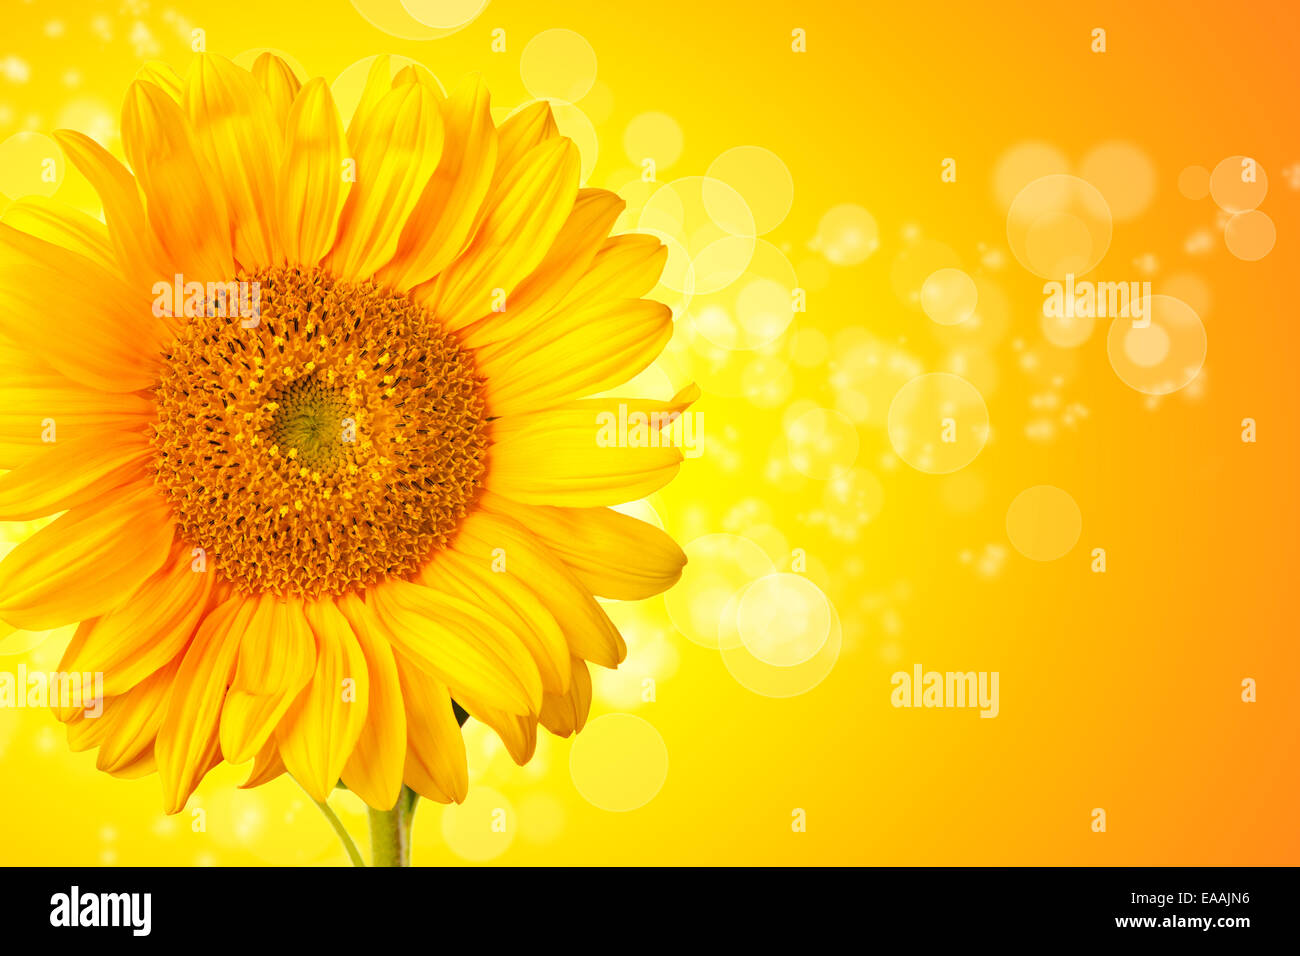 Sunflower blossom detail with abstract shiny background - Stock Image